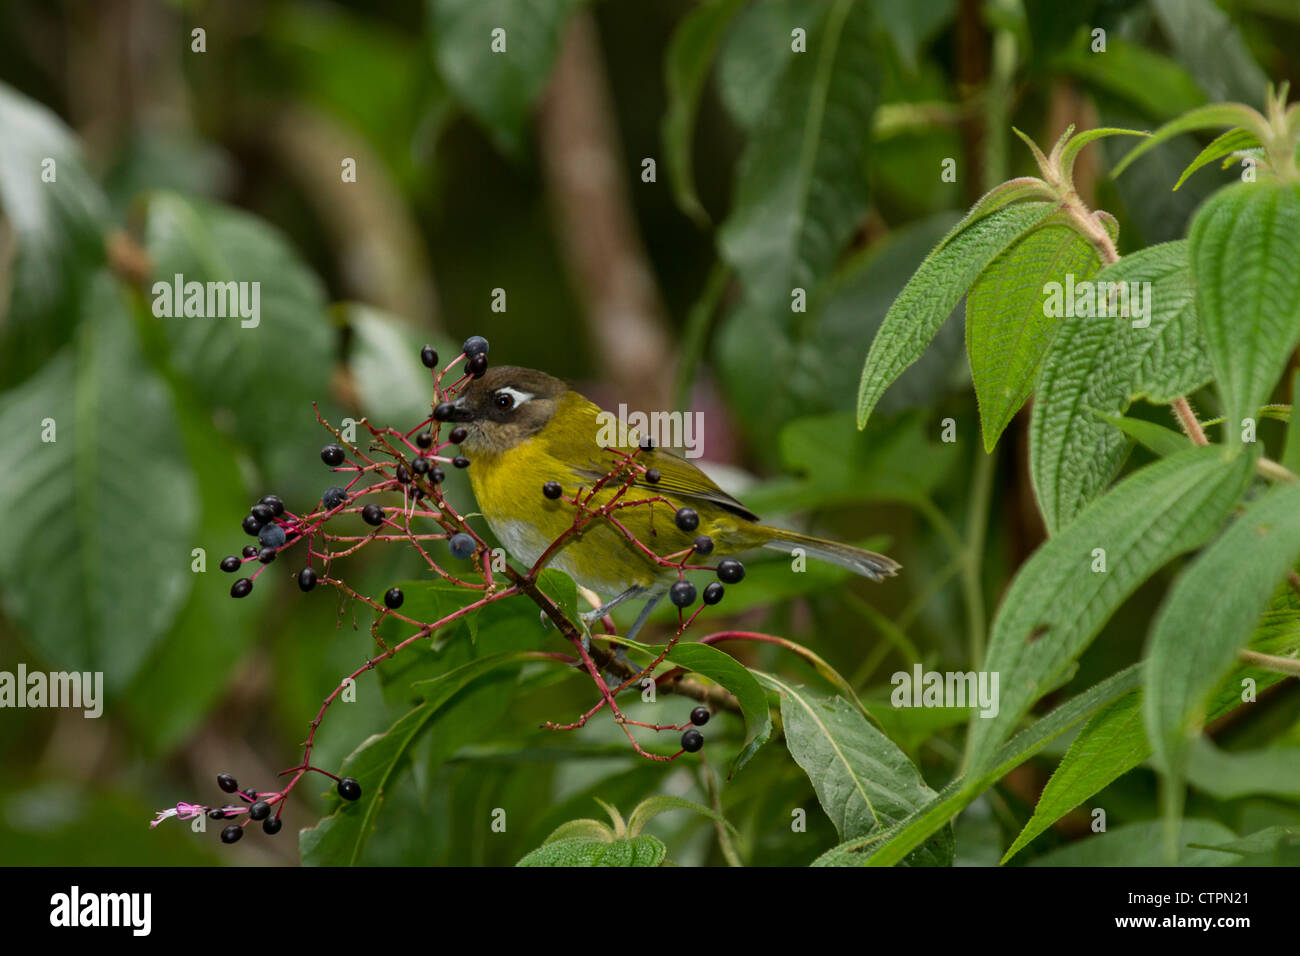 Common Bush Tanager (Chlorospingus ophthalmicus) on the Bajo Mono trail, Chiriqui Highlands, Panama. - Stock Image